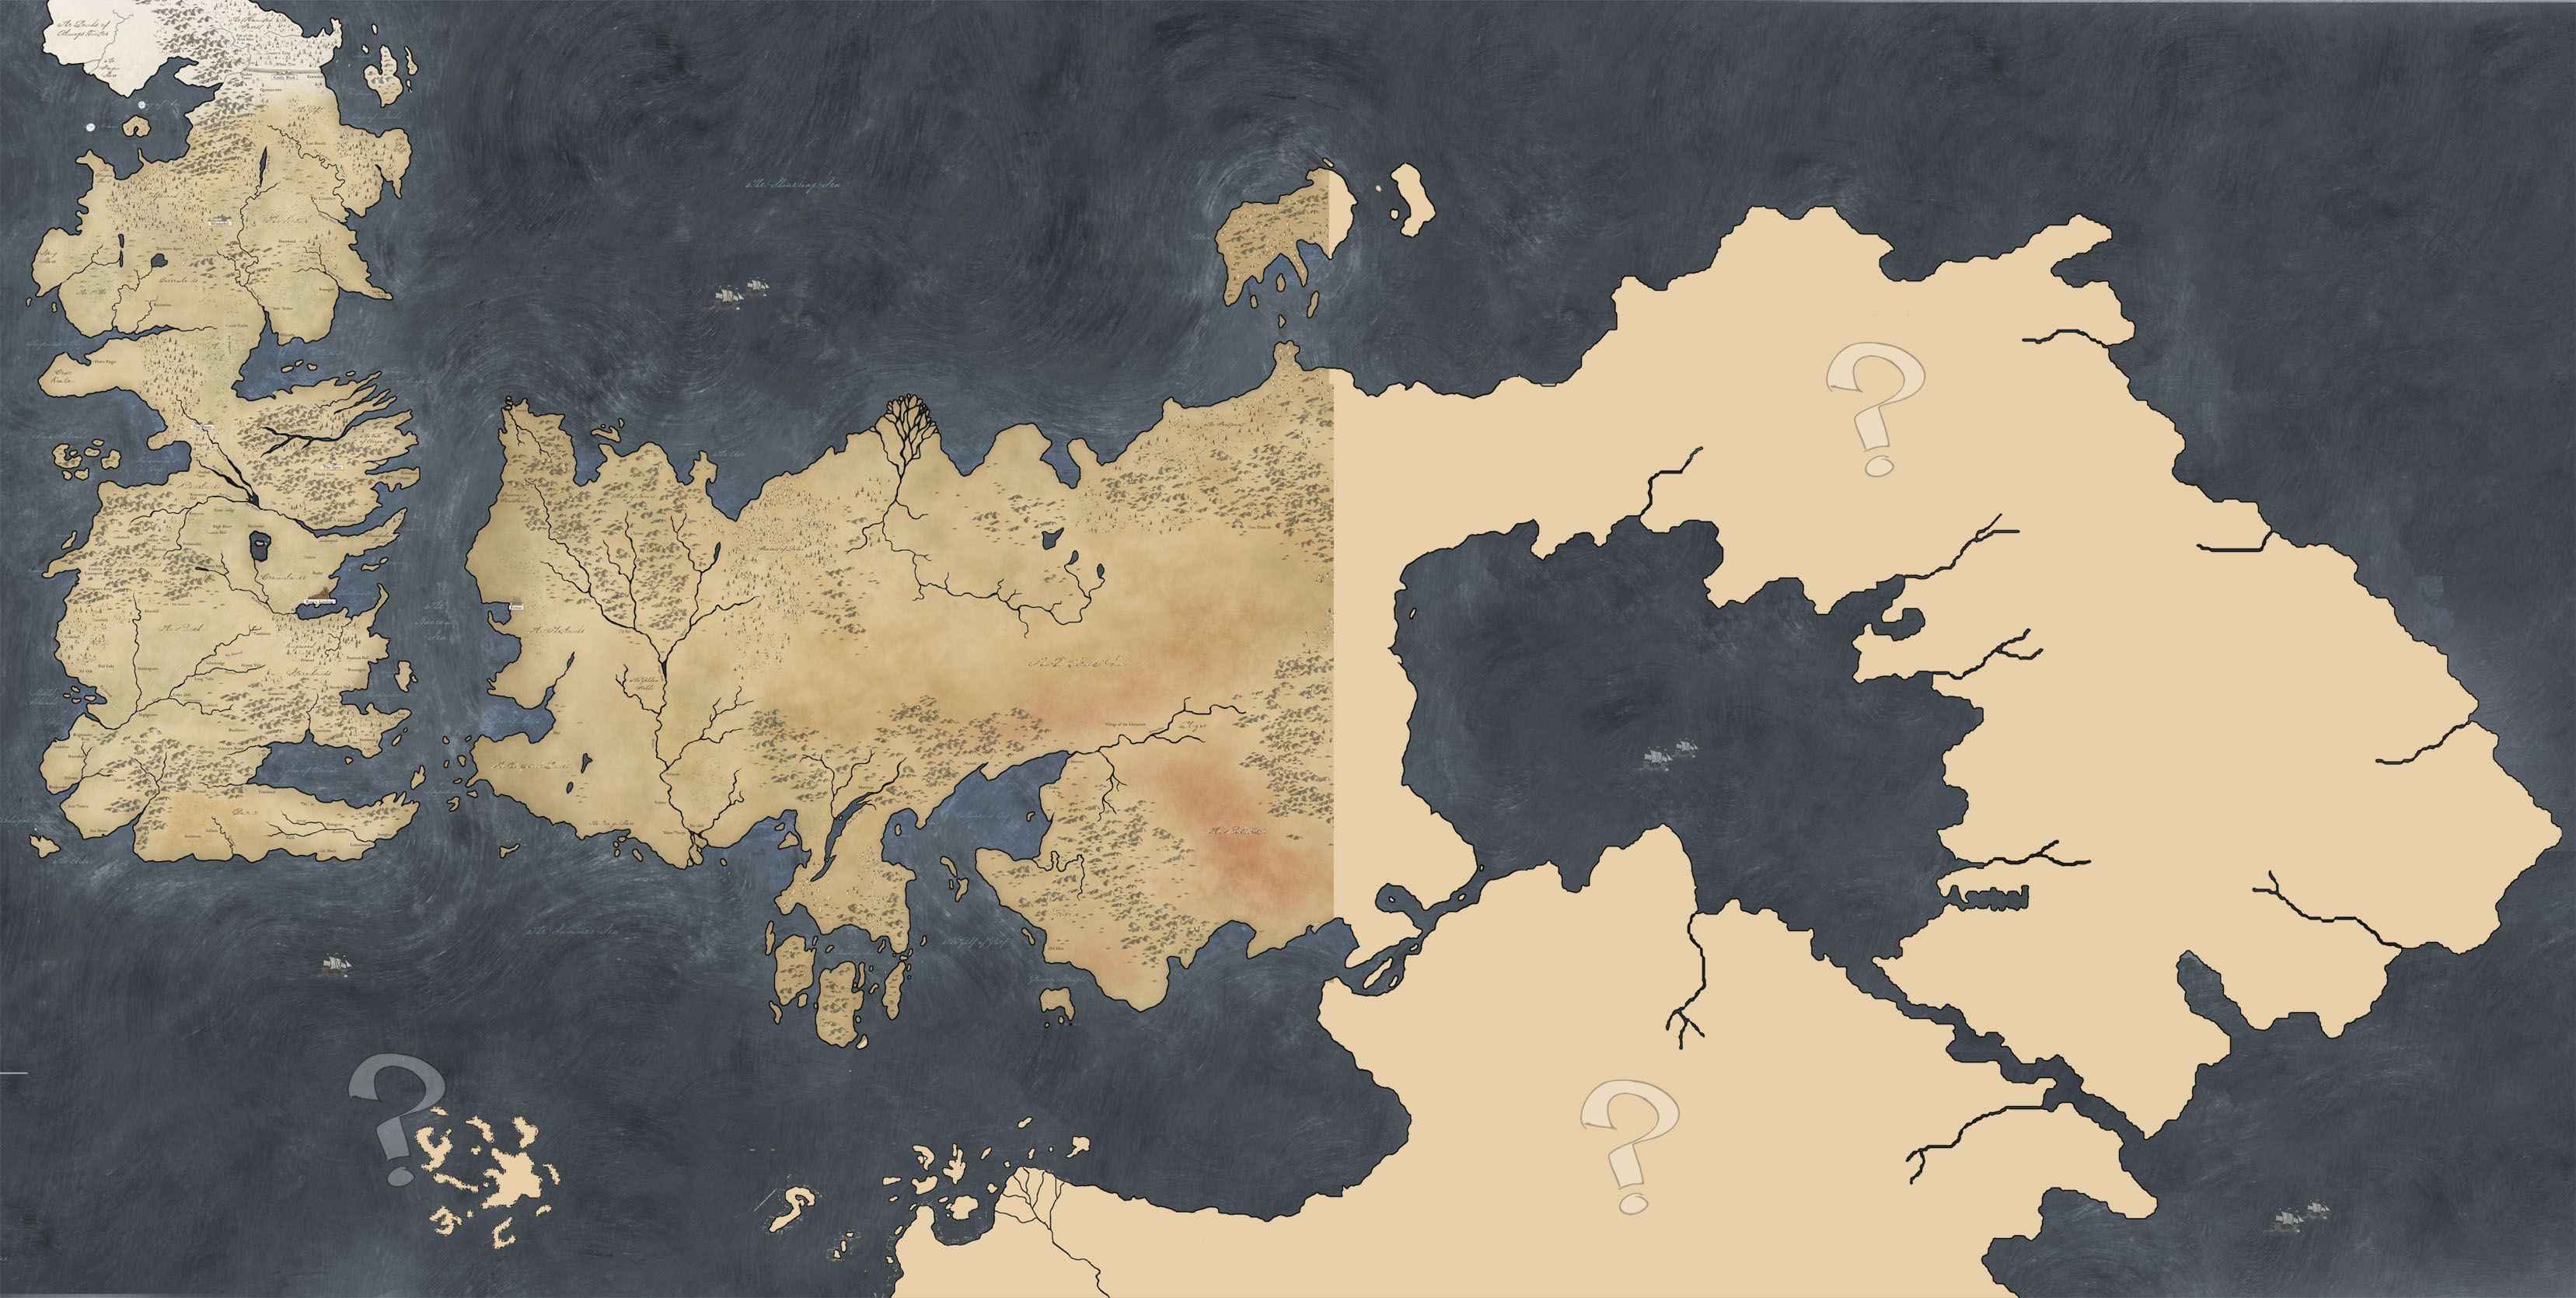 Westeros map wallpaper wallpapersafari westeros map plika map of ice and firejpg 3314x1670 gumiabroncs Image collections